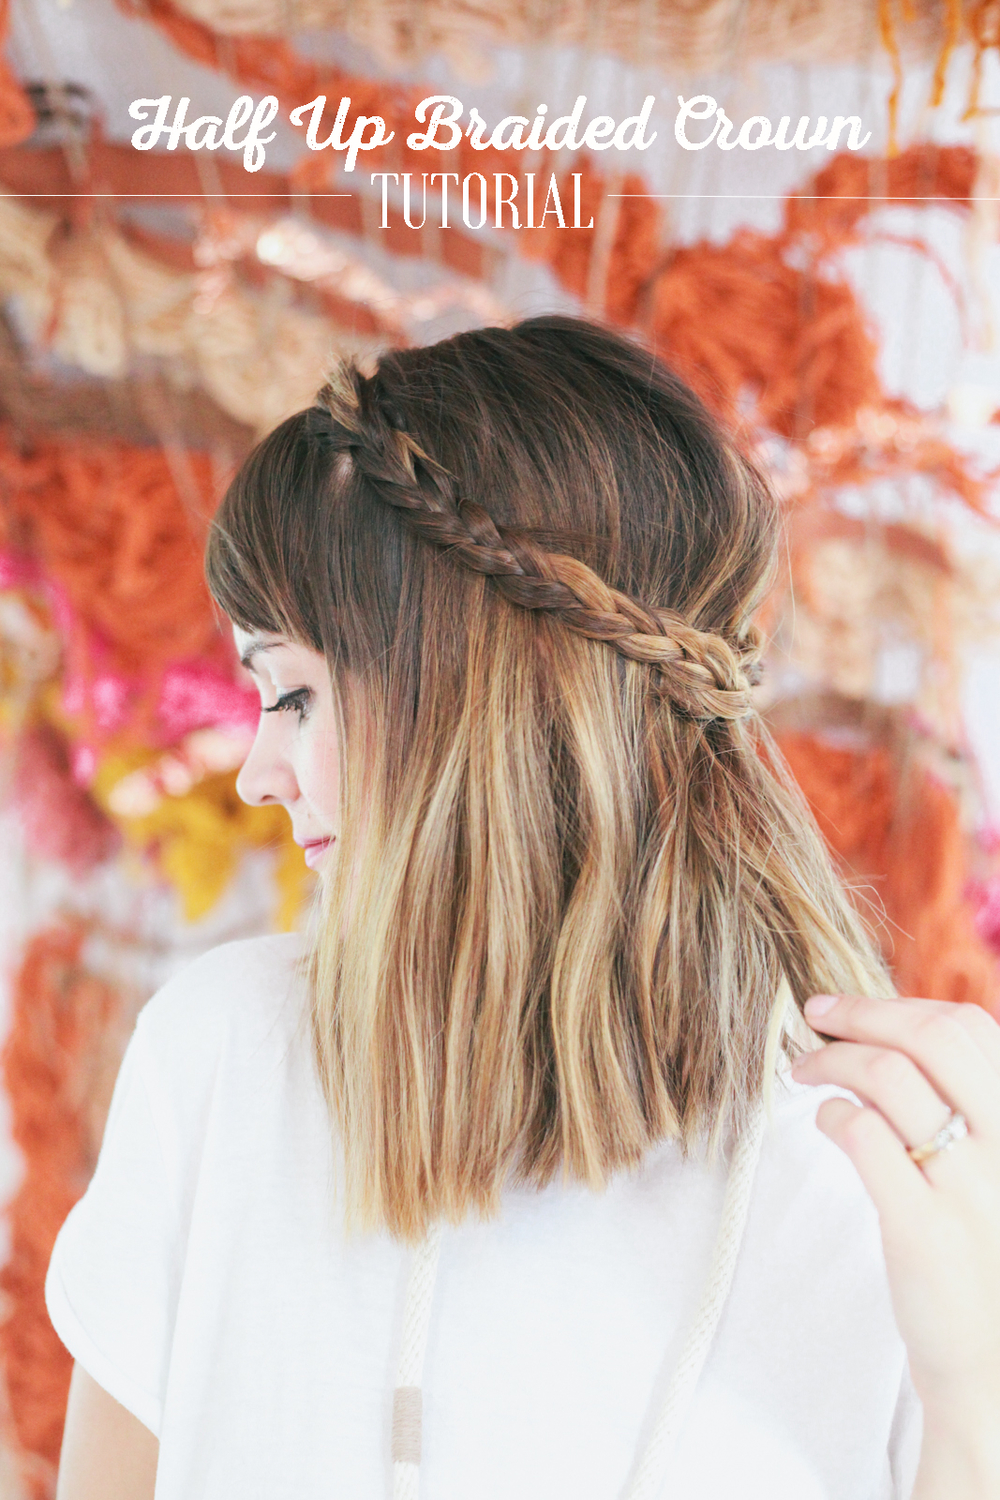 Half Up Braided Crown Tutorial